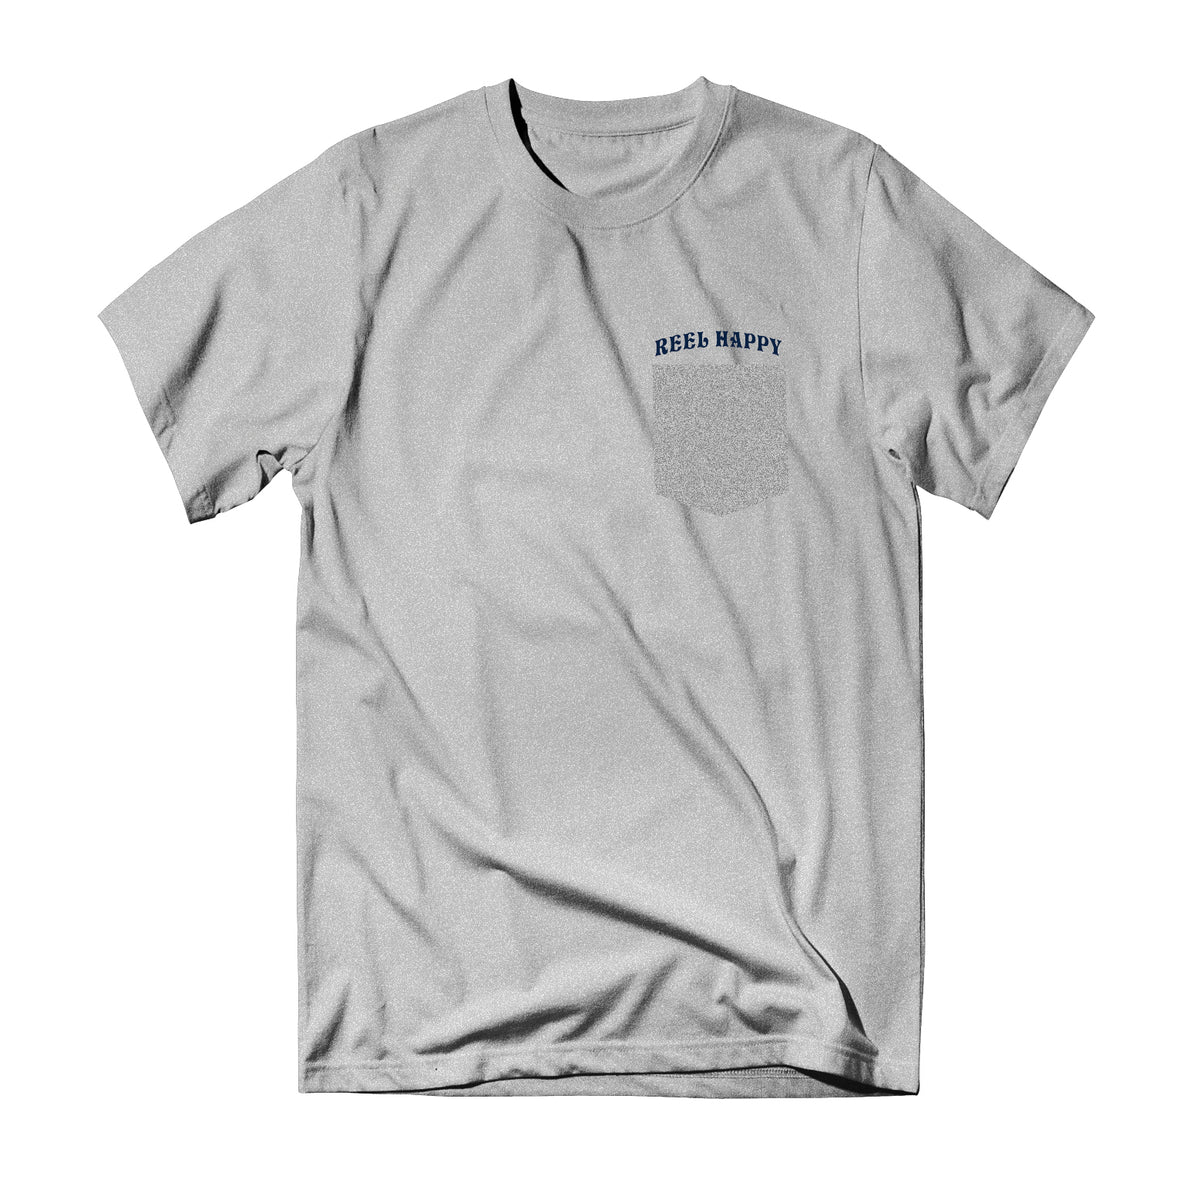 Large Marge Pocket Tee - Heather Grey - Reel Happy Co